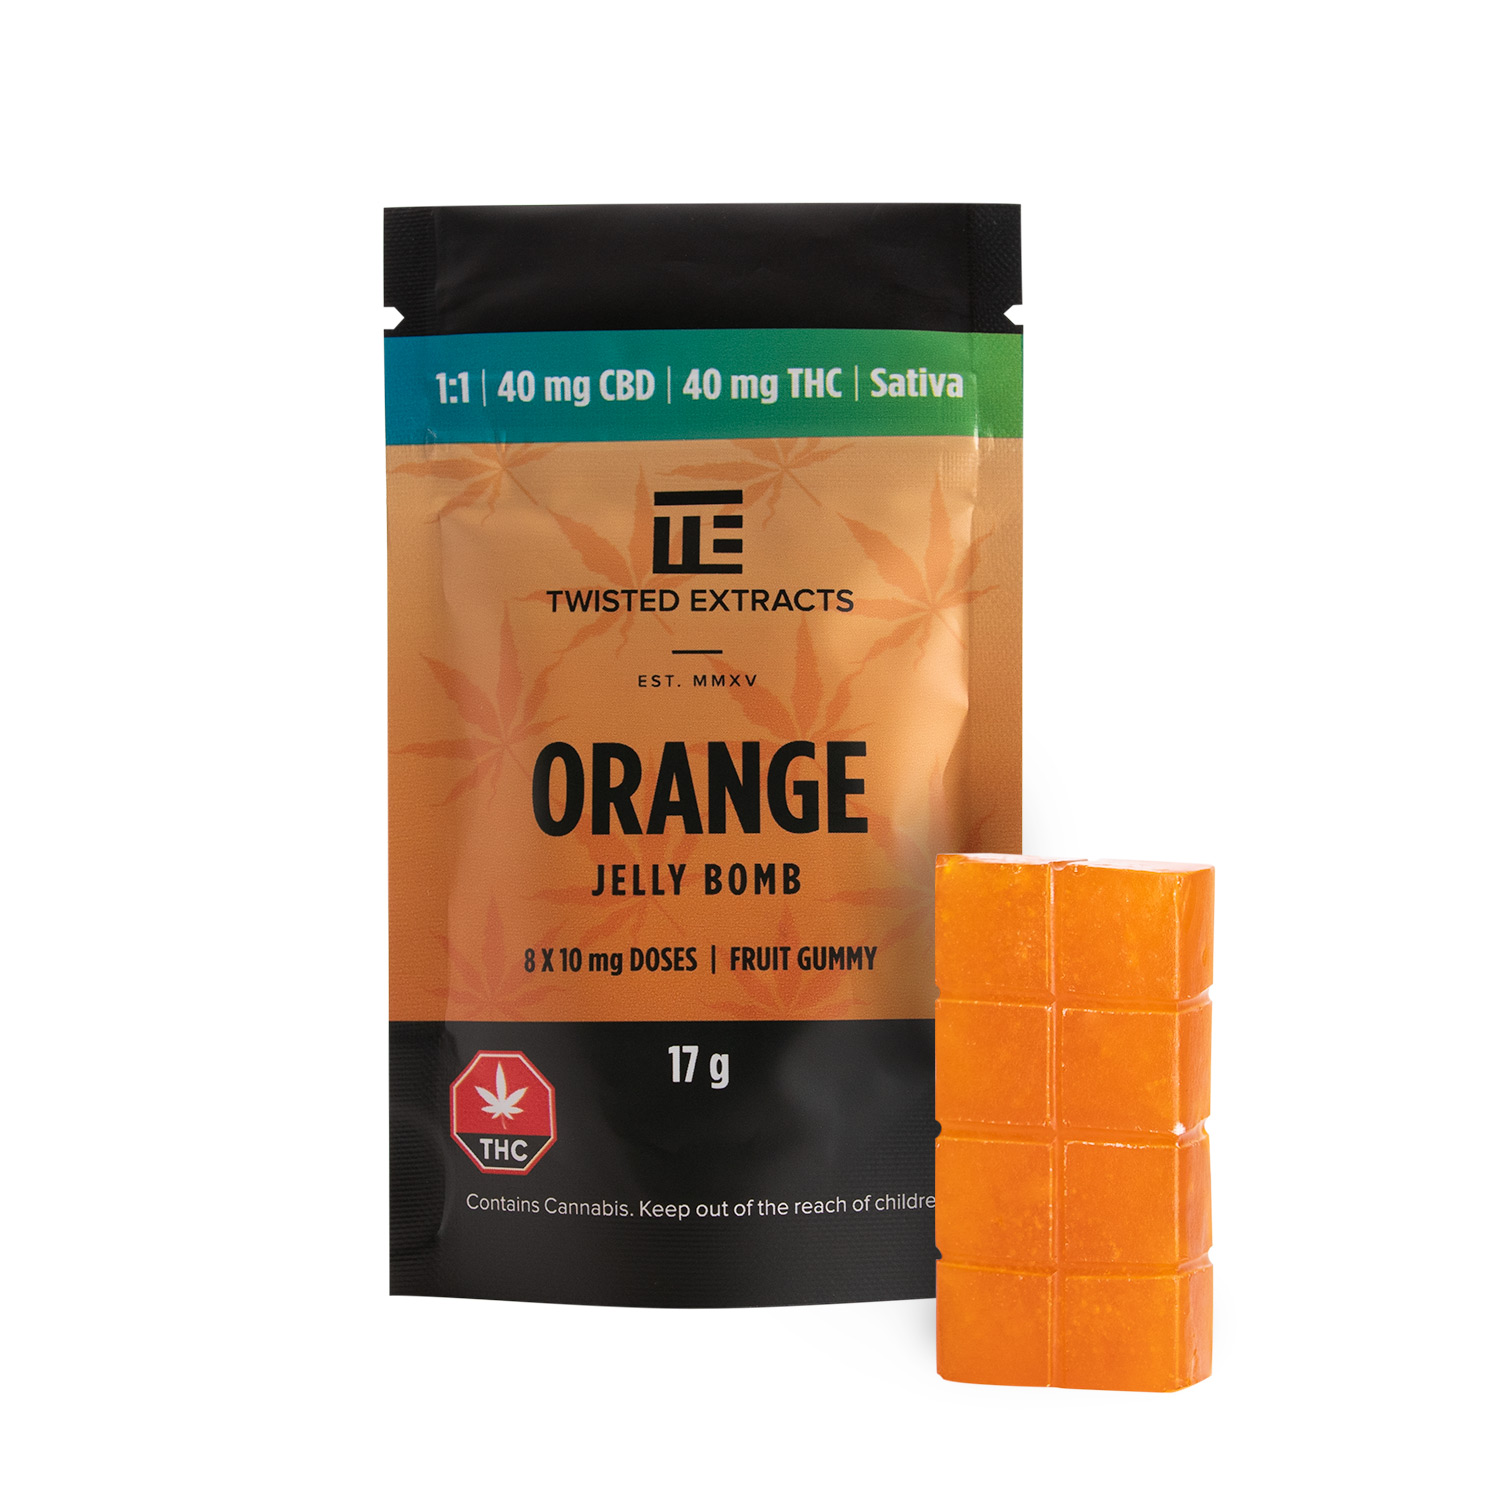 Twisted Extracts | Orange Jelly Bomb 1:1 | Sativa | 40mg CBD & 40mg THC